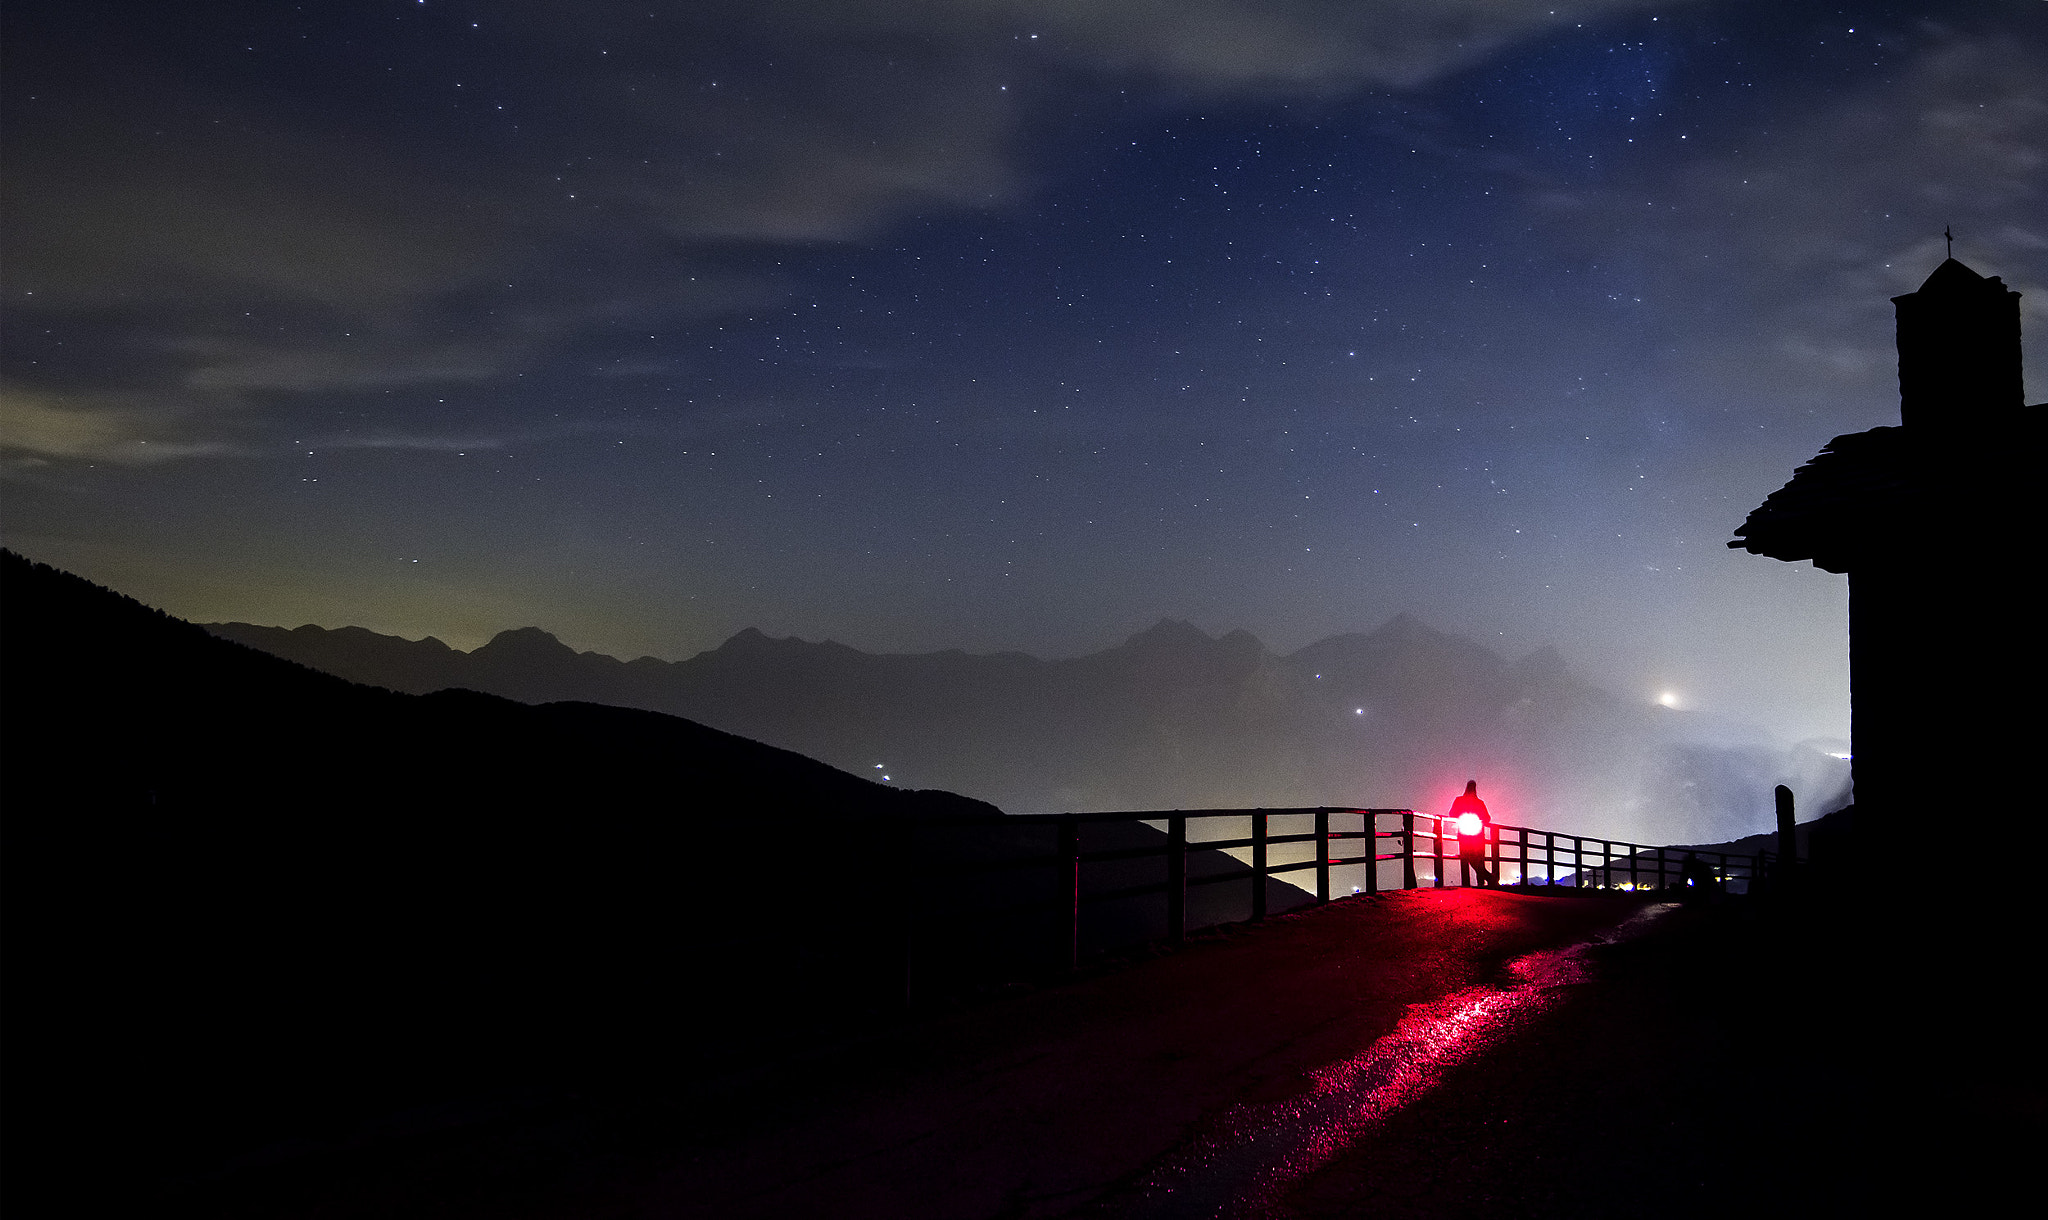 Photograph star finder by giovanni triggiani on 500px